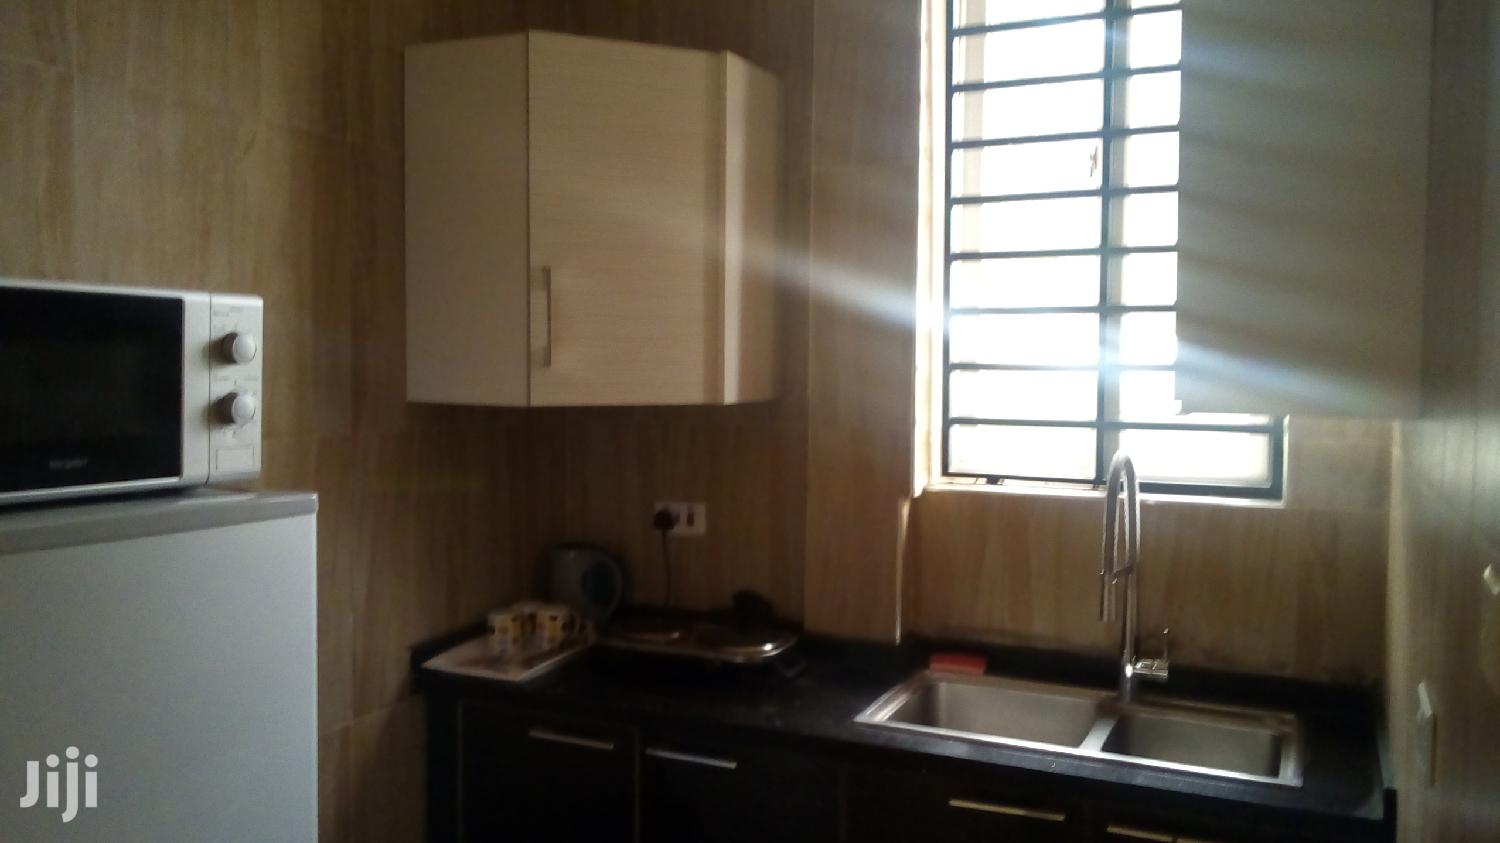 2 BEDROOM Furnished For RENT | Houses & Apartments For Rent for sale in East Legon, Greater Accra, Ghana